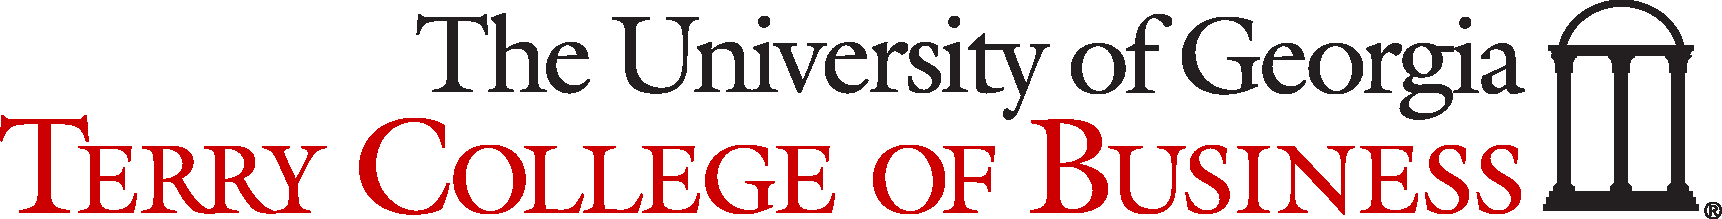 University of Georgia, Terry College of Business, Real Estate Program